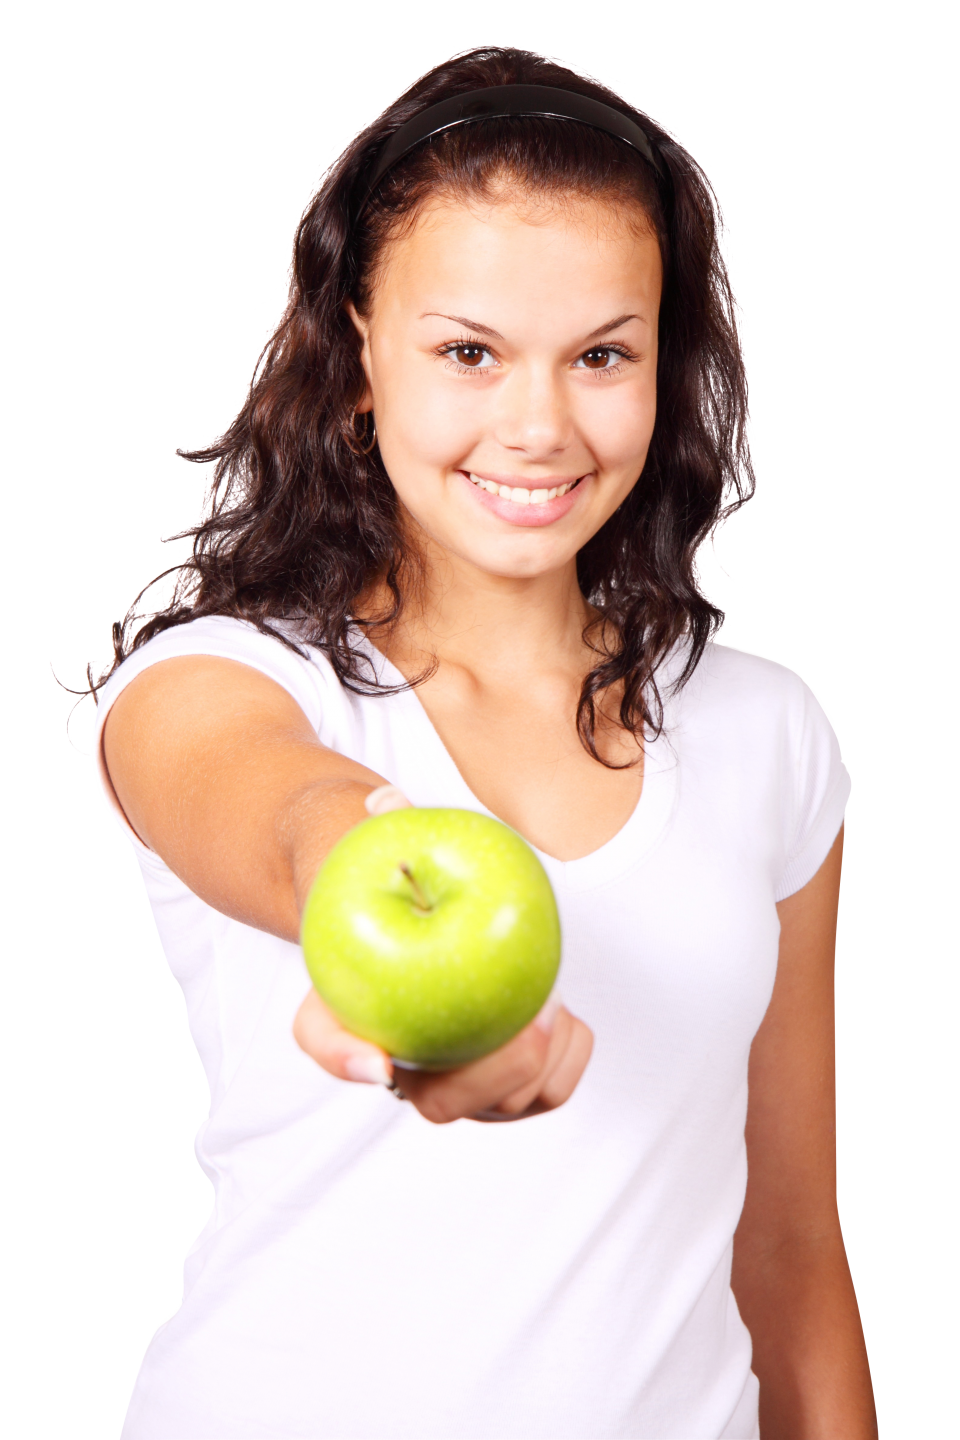 A girl hold apple in her hand PNG Image